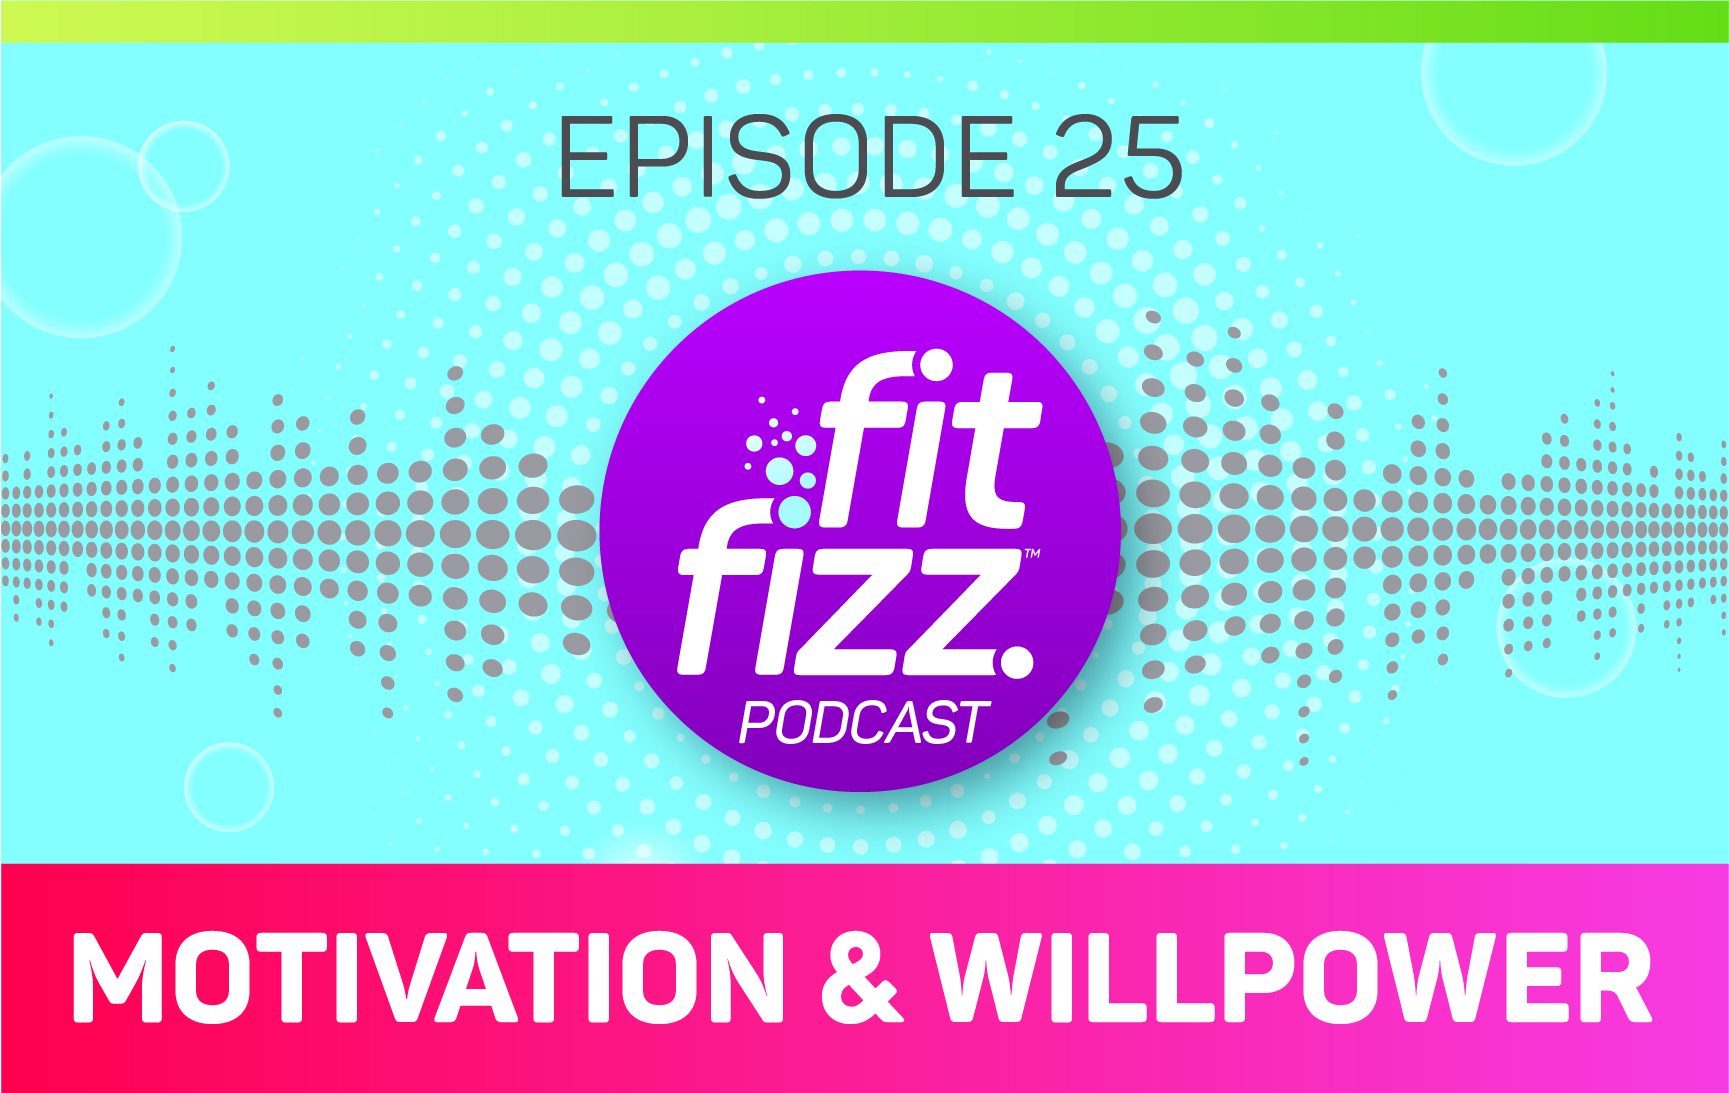 Ep. 25: Motivation & Willpower